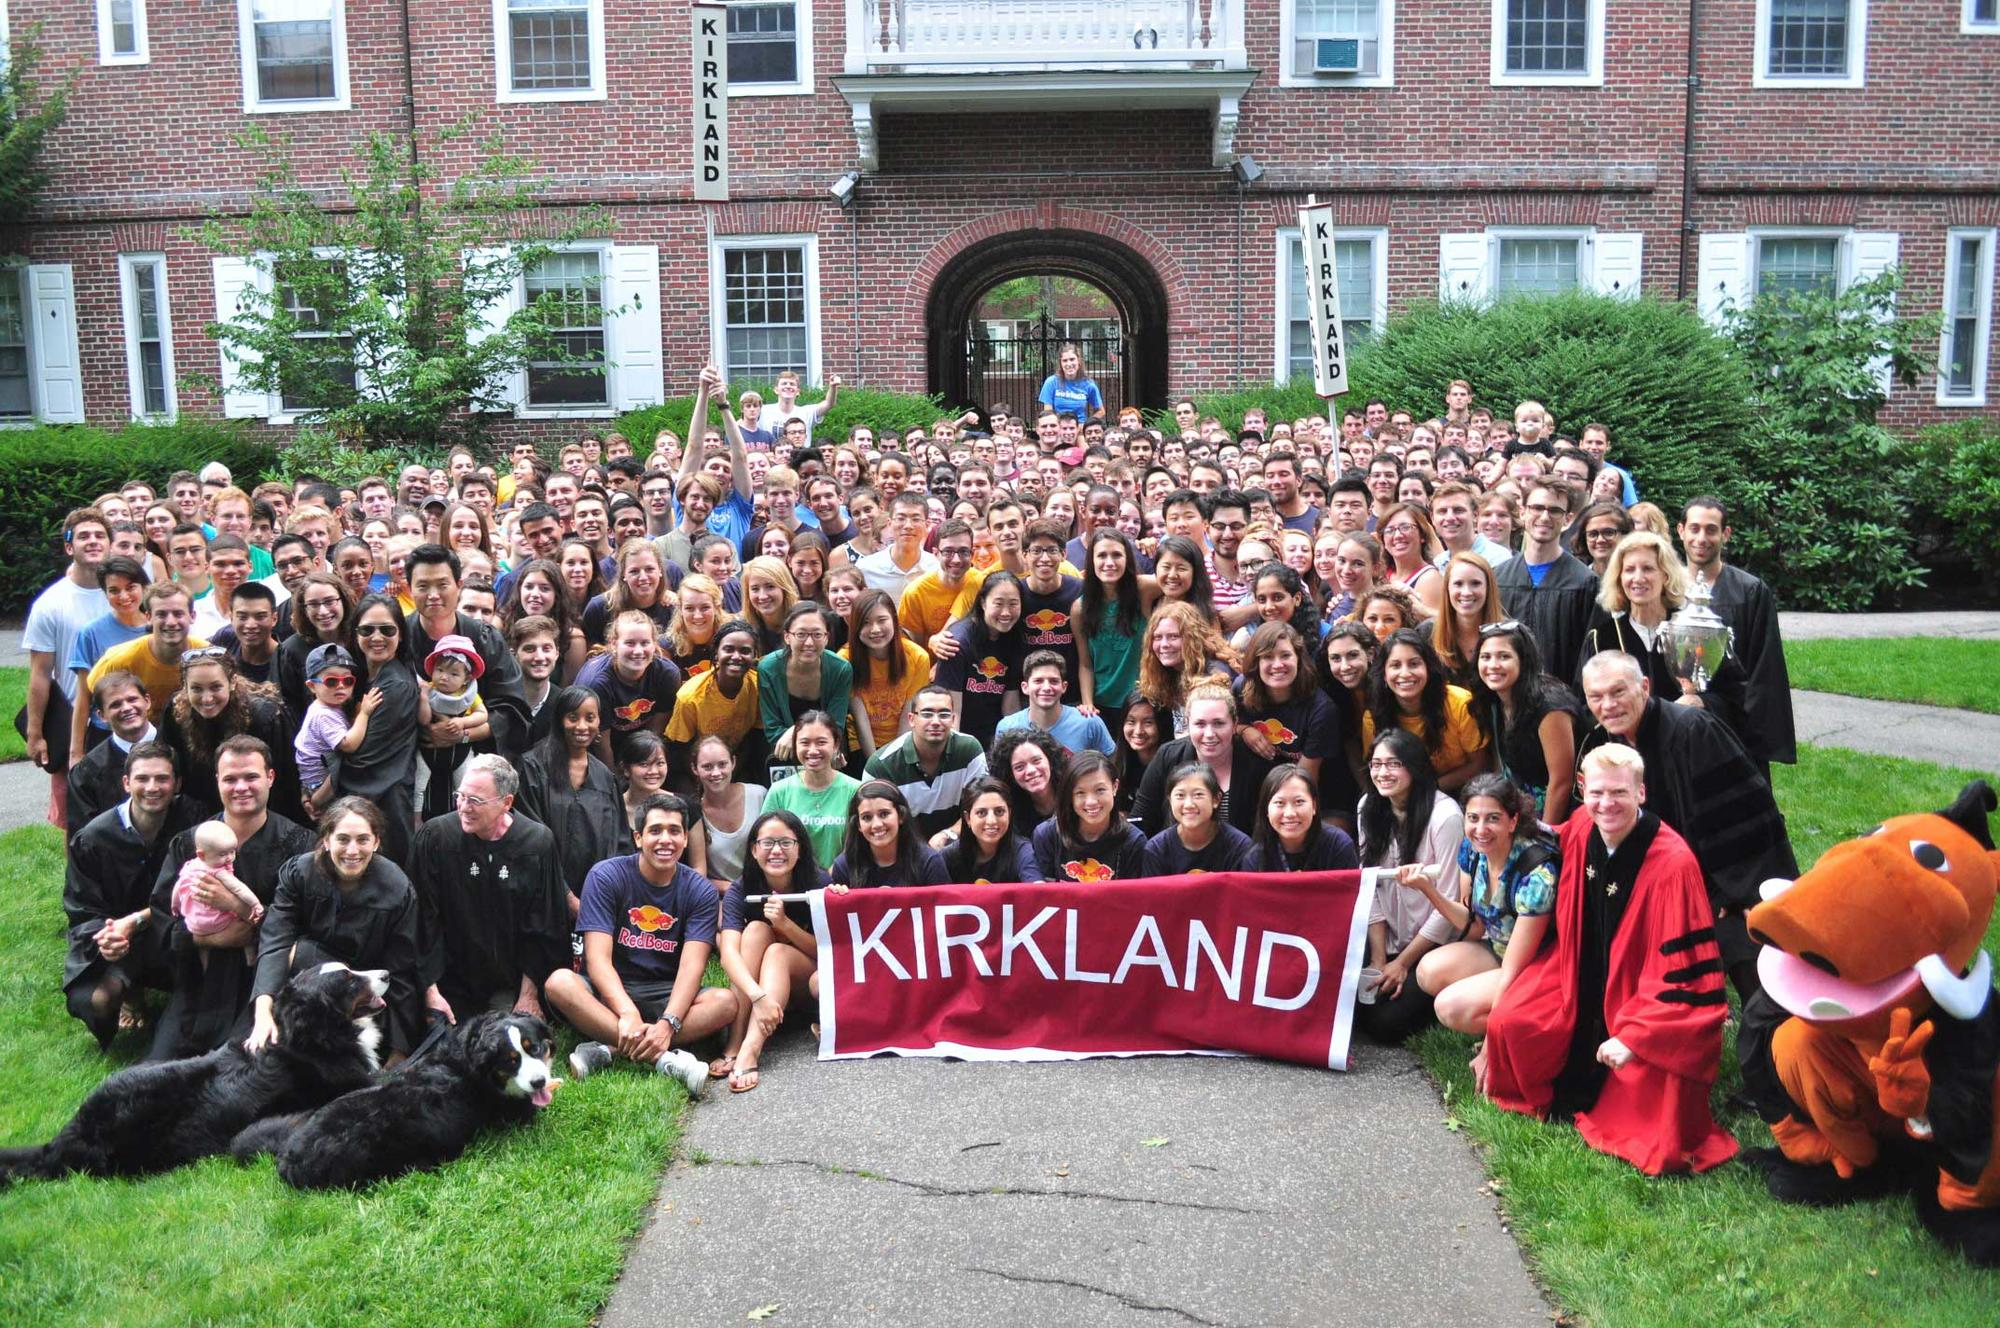 All-House Photo from fall 2013